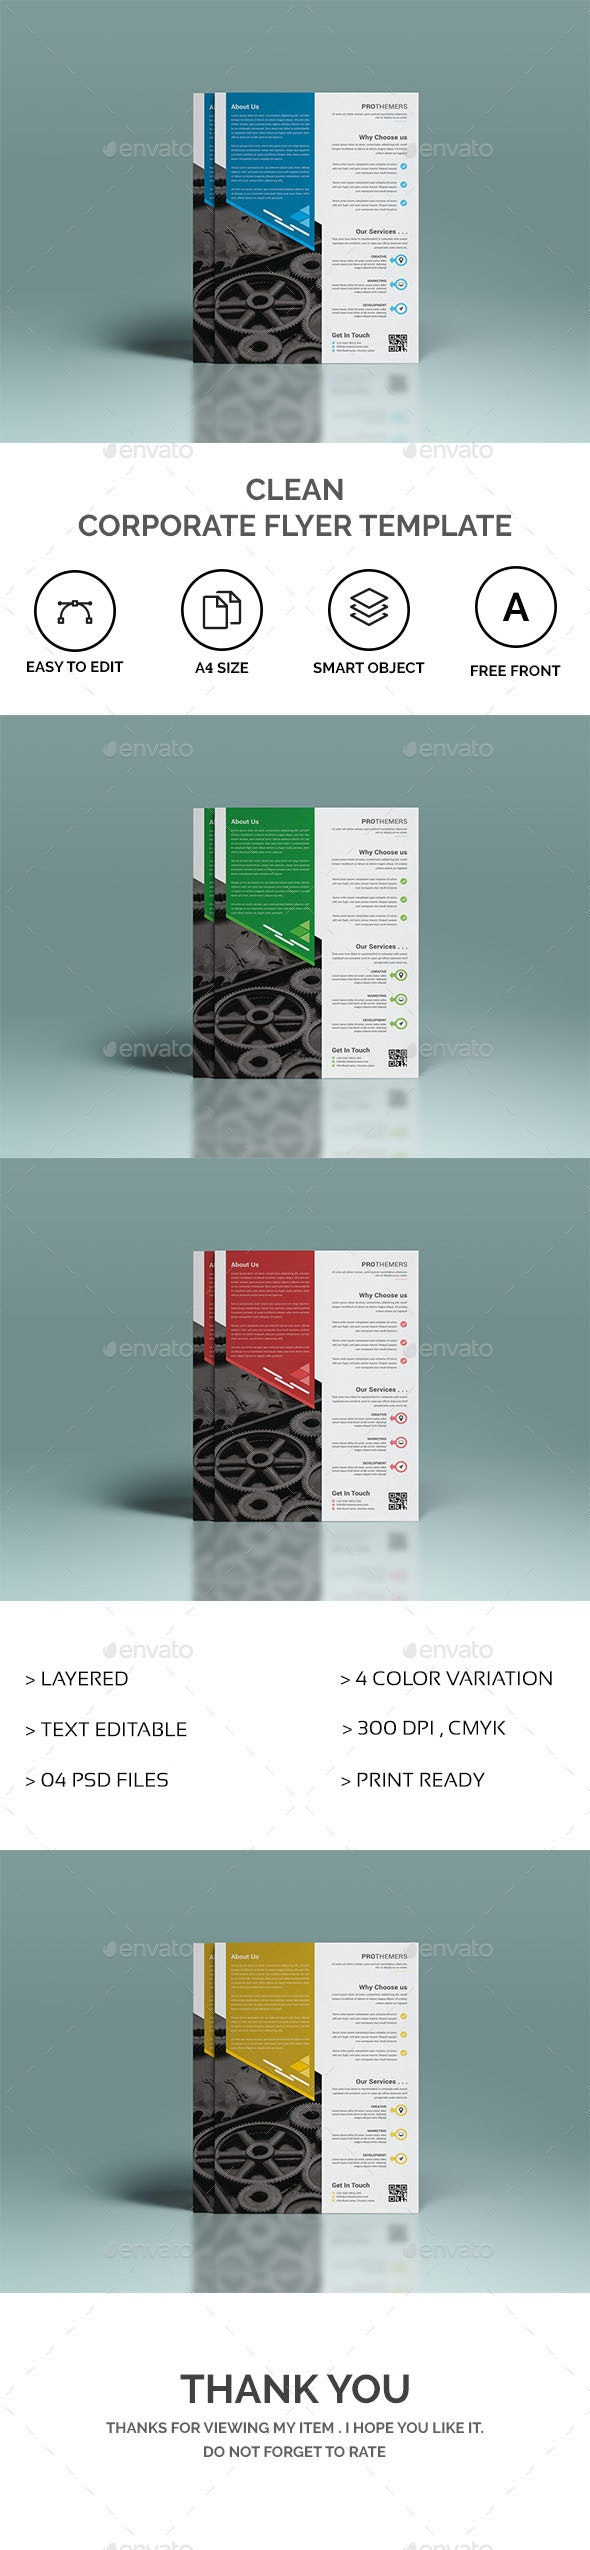 Clean Corporate Flyer Template - Corporate Flyers